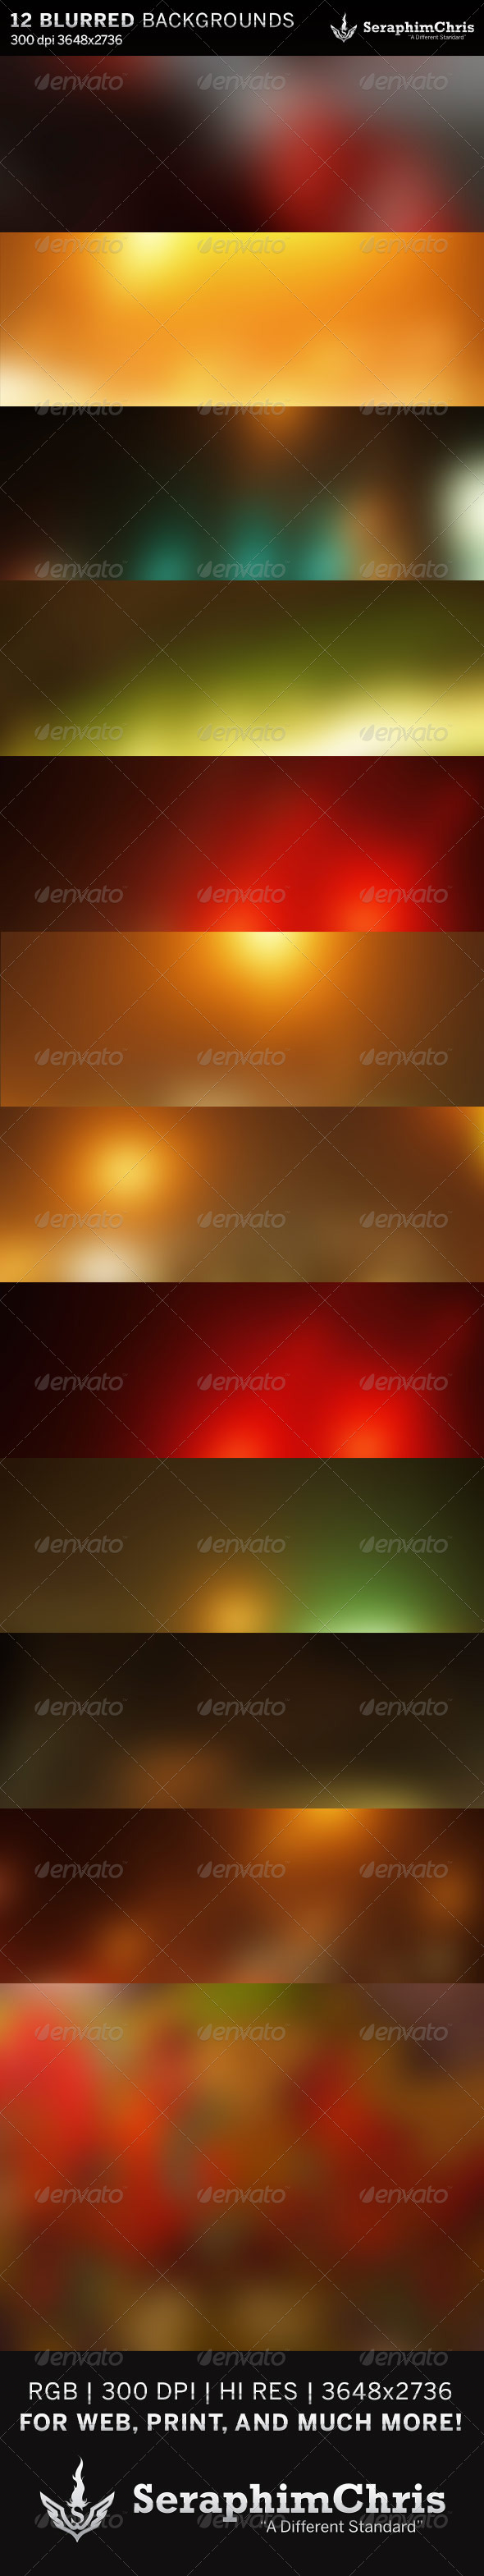 GraphicRiver 12 Abstract Blurred HD Backgrounds 6400033